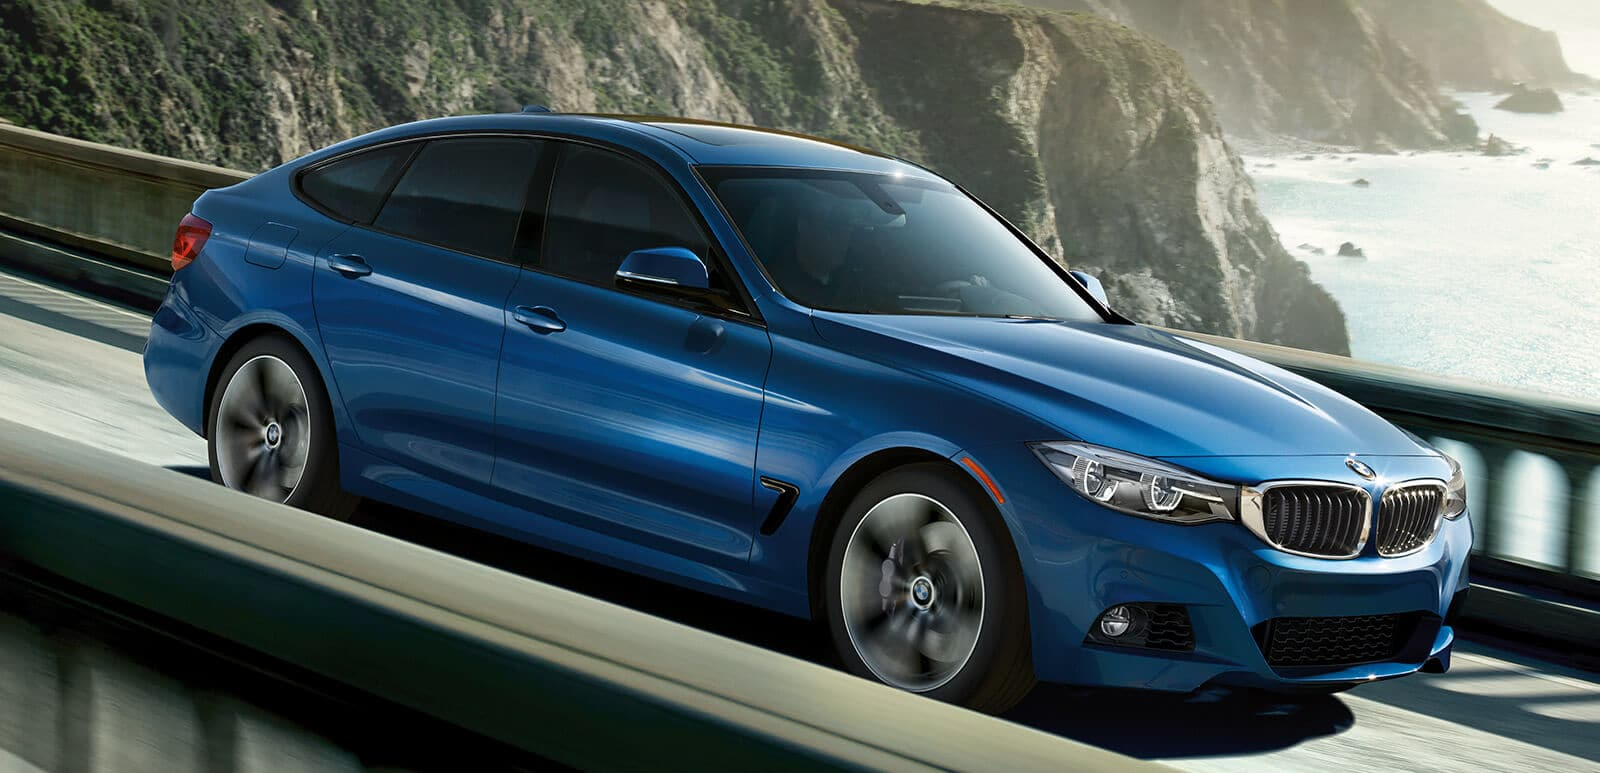 2018 BMW 3 Series for Sale near Olympia Fields, IL